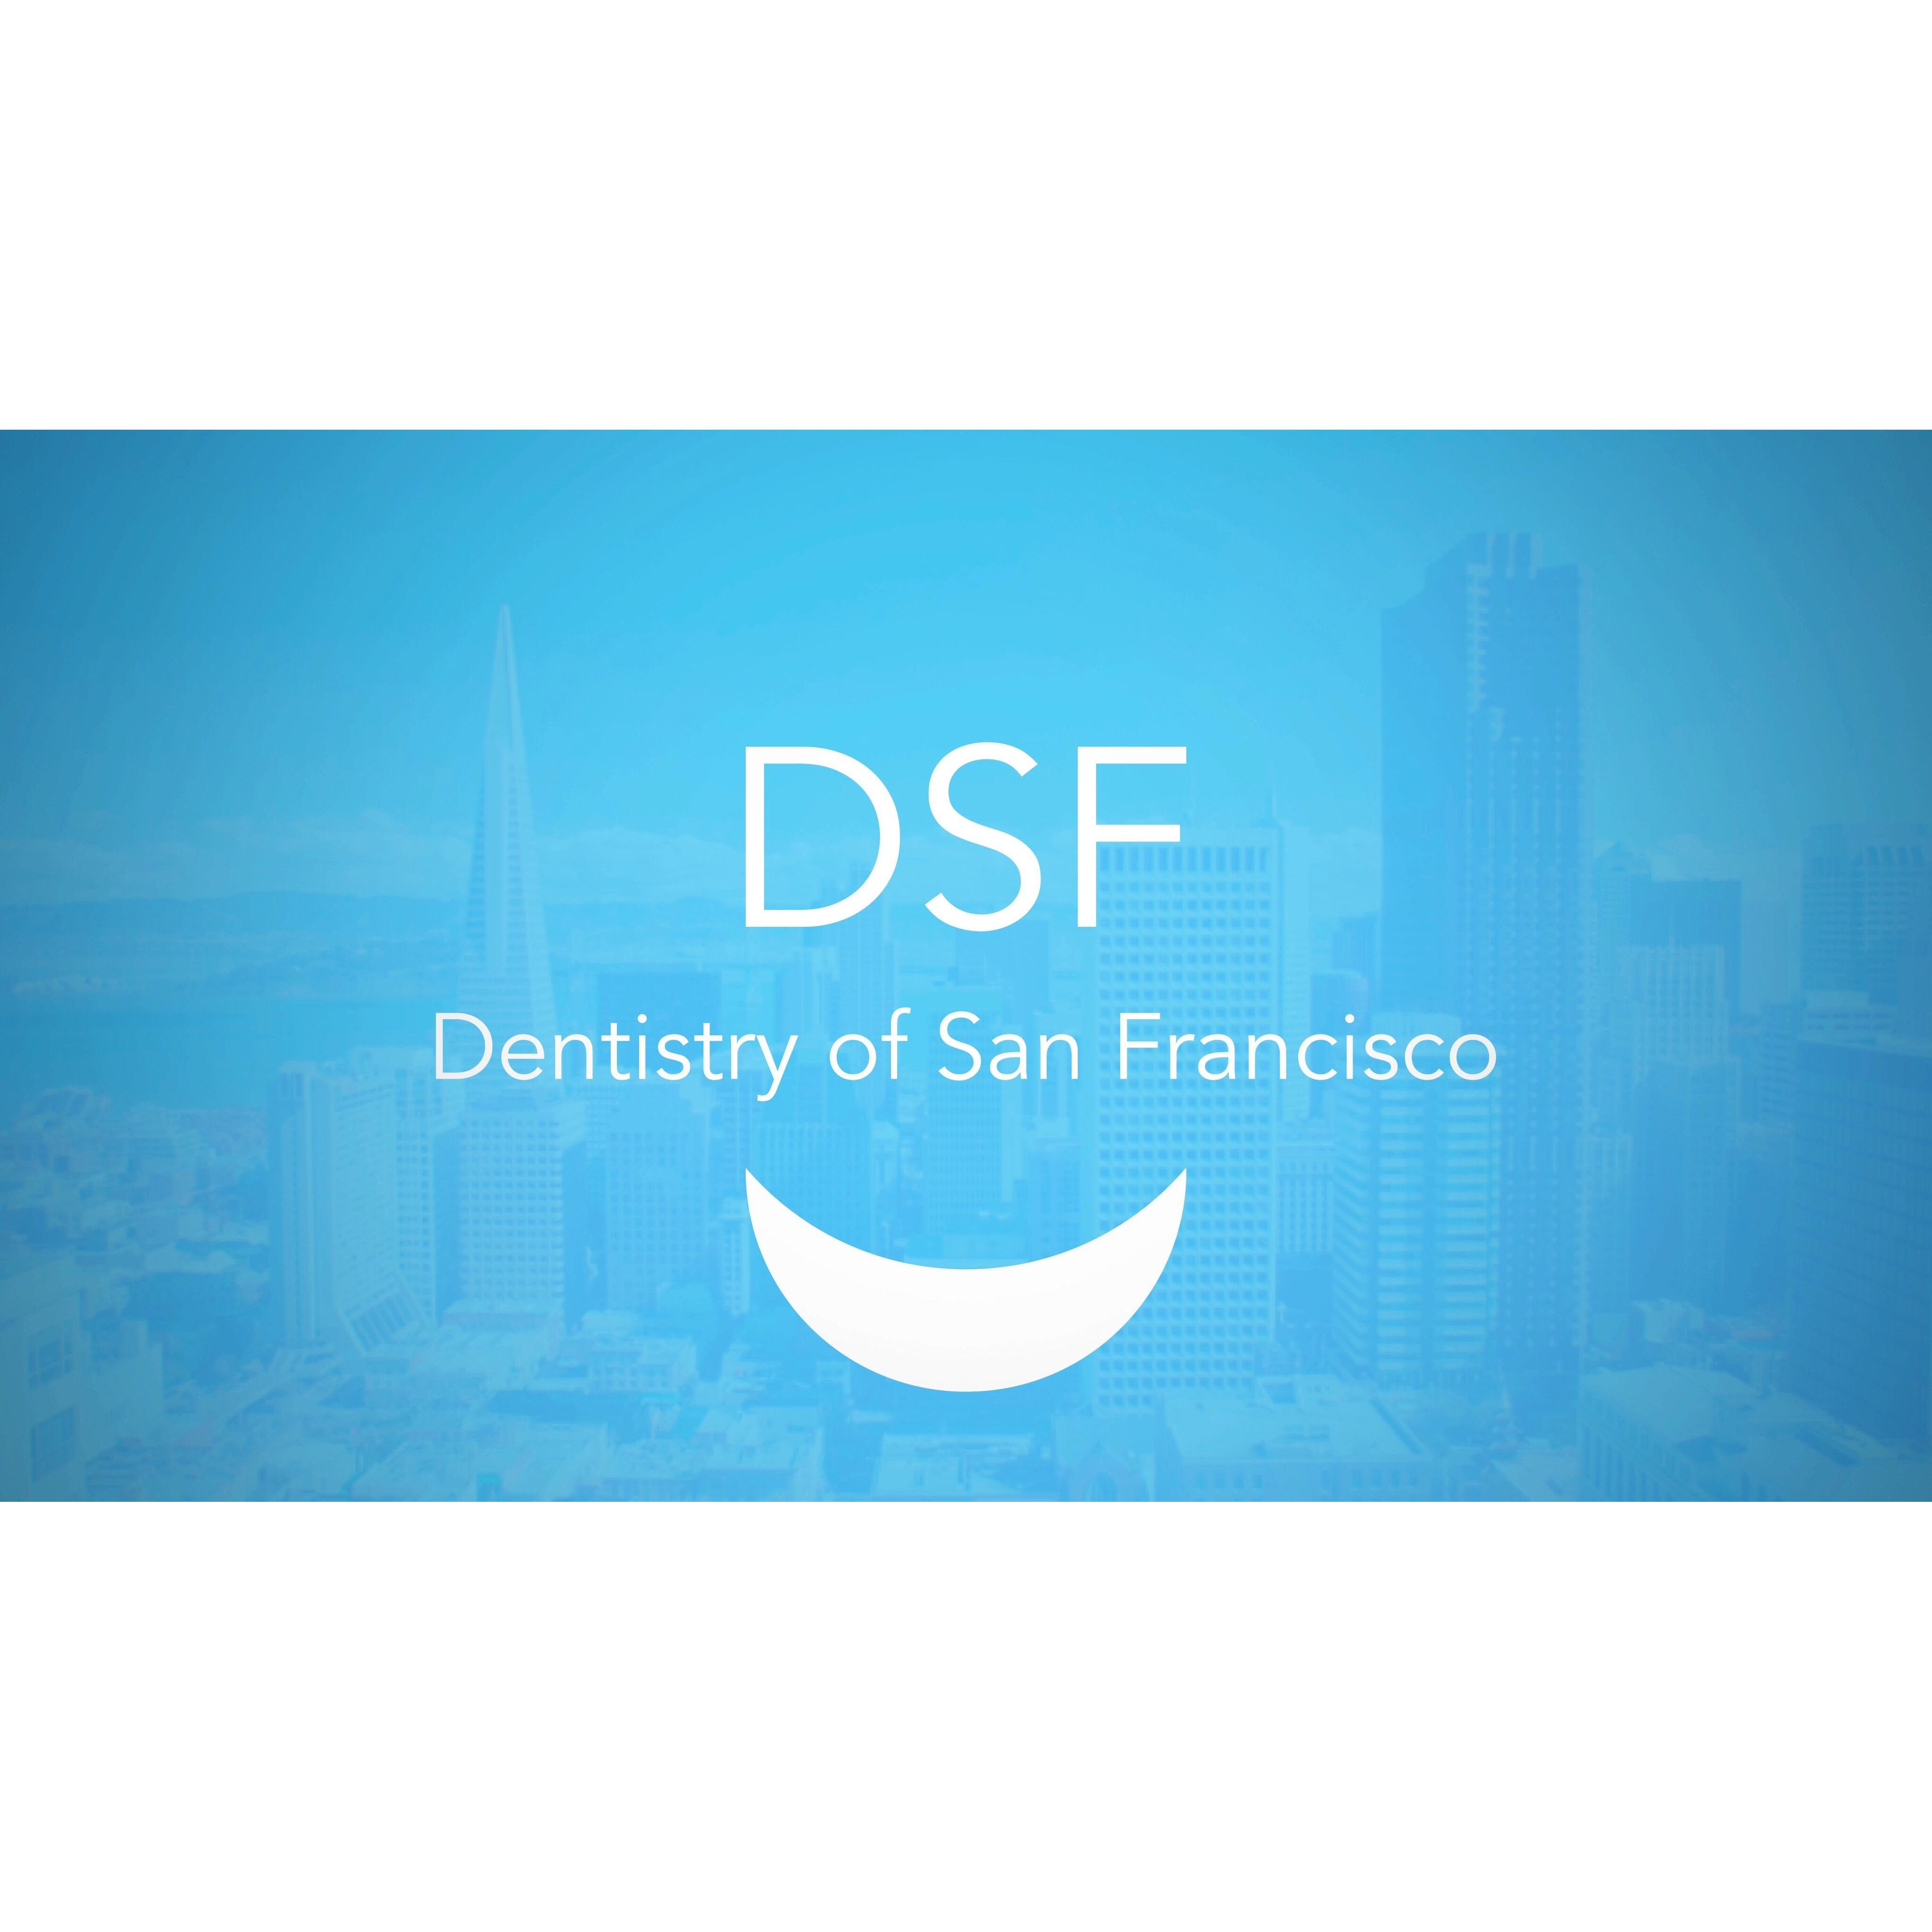 Dentistry of San Francisco, General & Cosmetic Dentist Dr. Joseph DDS image 1